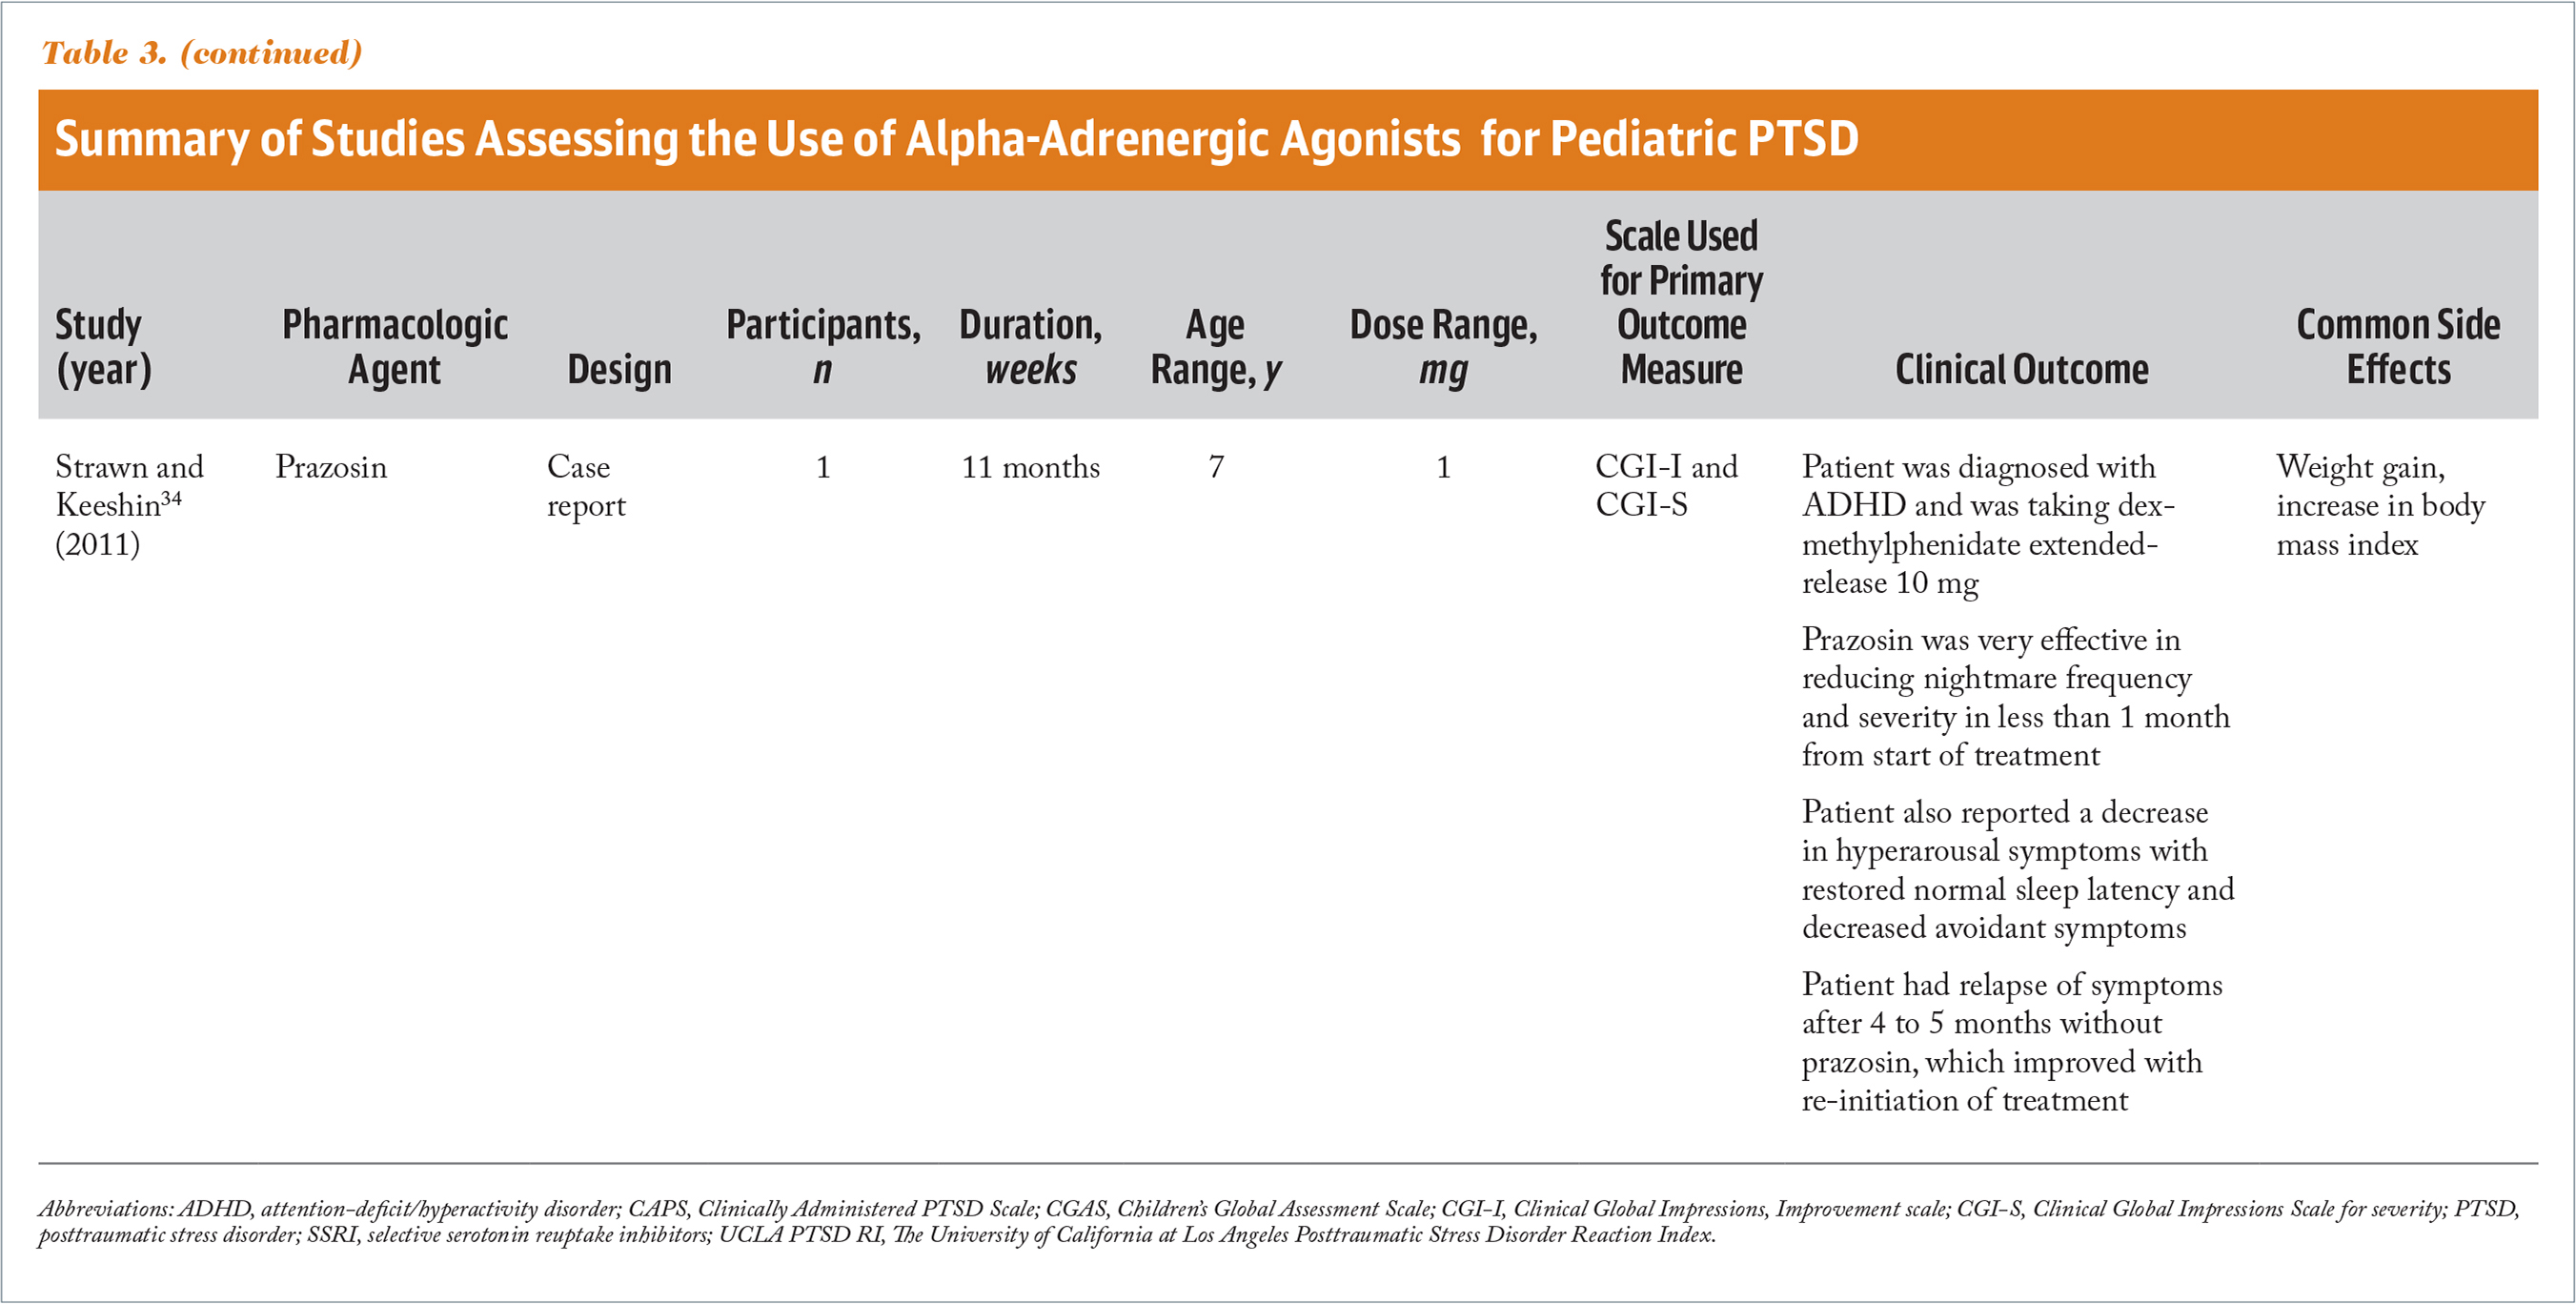 Summary of Studies Assessing the Use of Alpha-Adrenergic Agonists for Pediatric PTSD